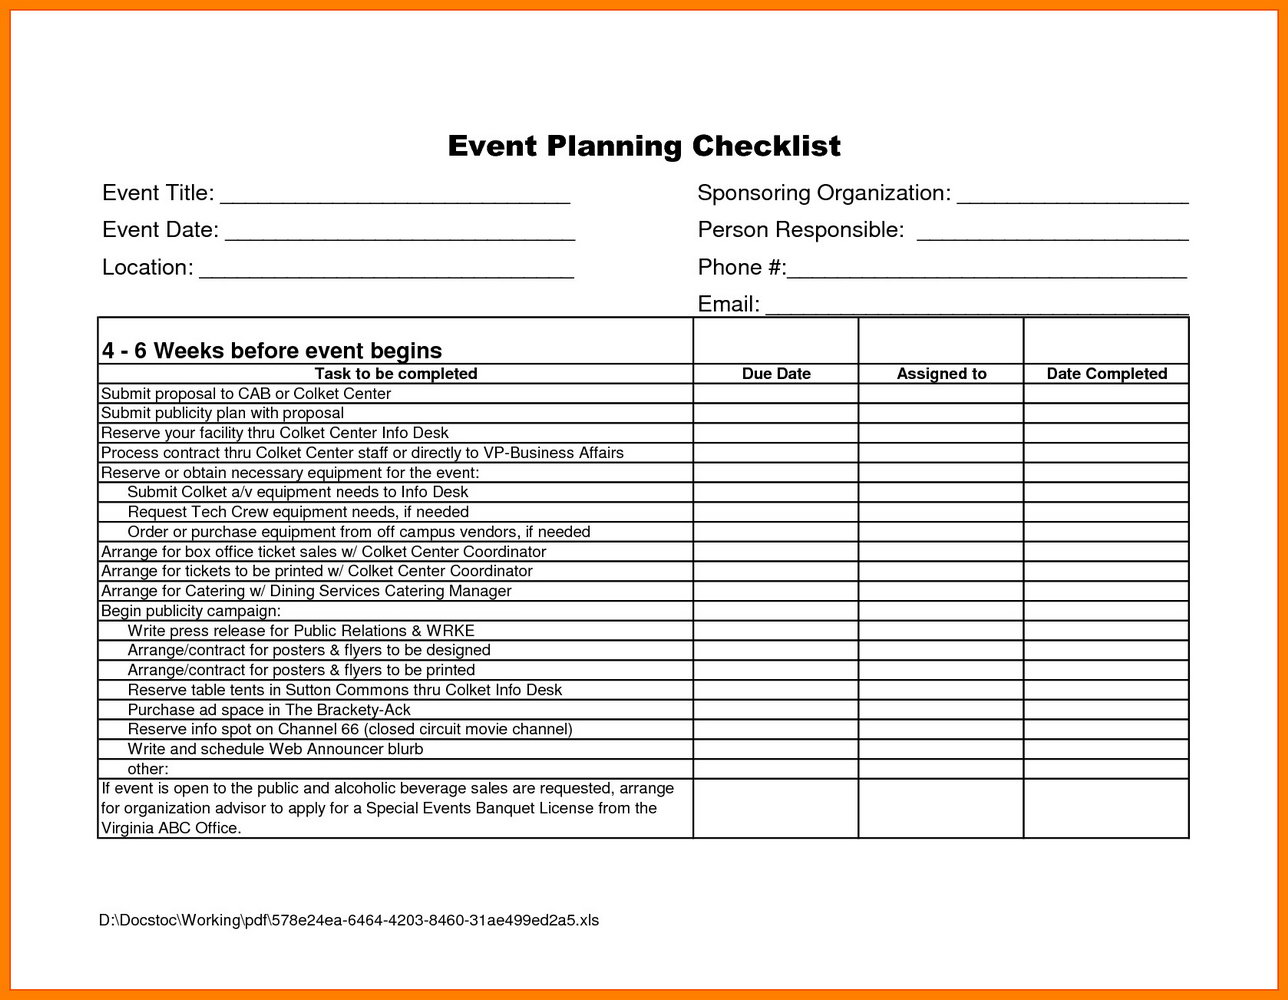 Event Planning Timeline Template Excel